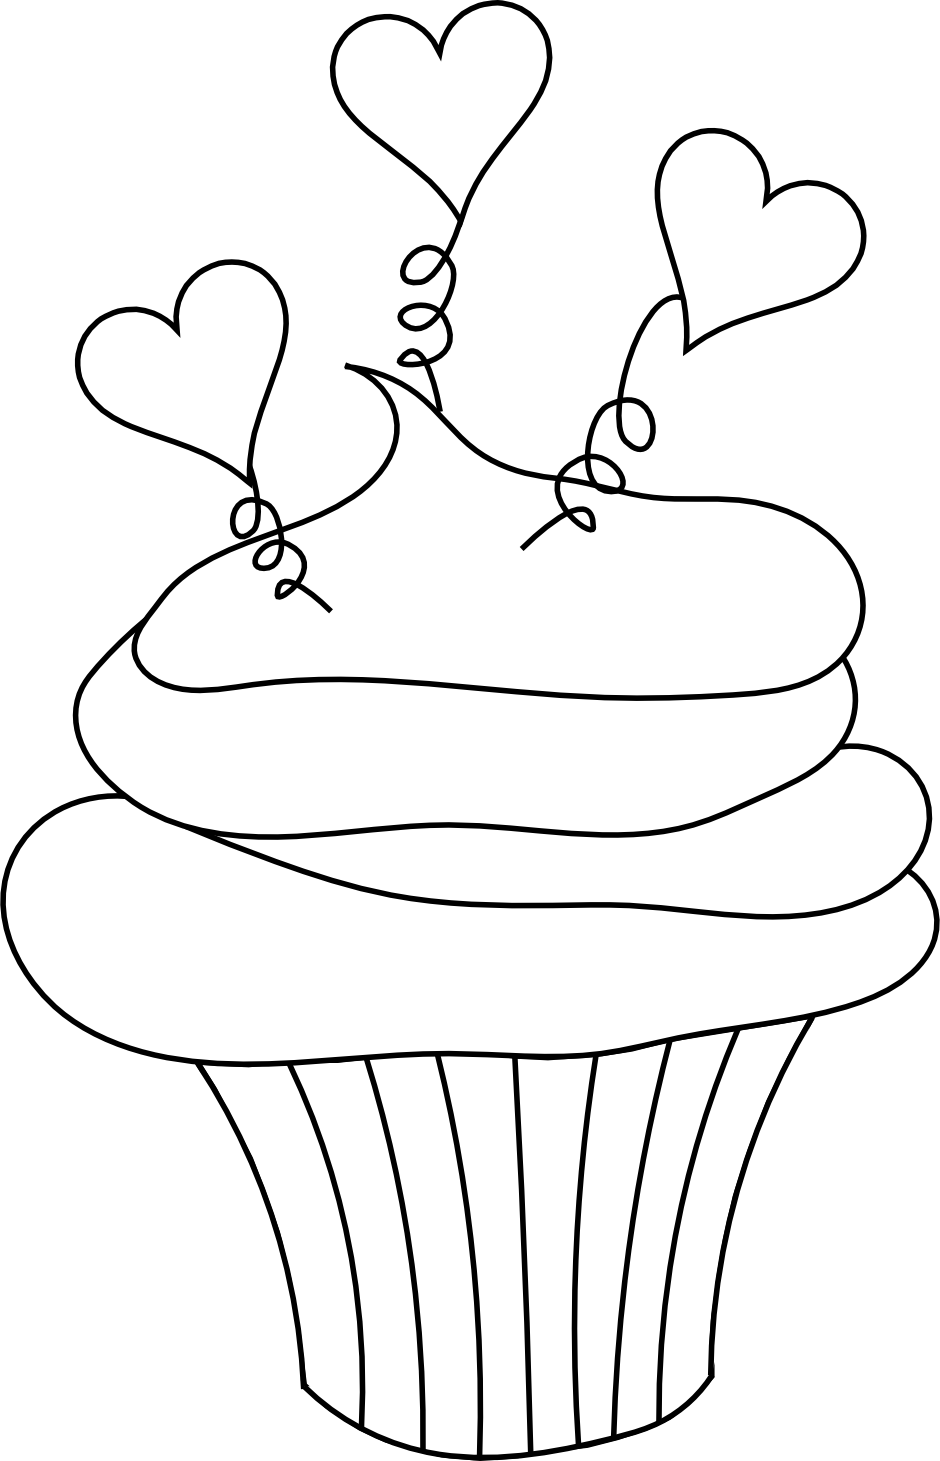 Cupcake coloring template pictures to pin on pinterest for Cupcake coloring pages printable